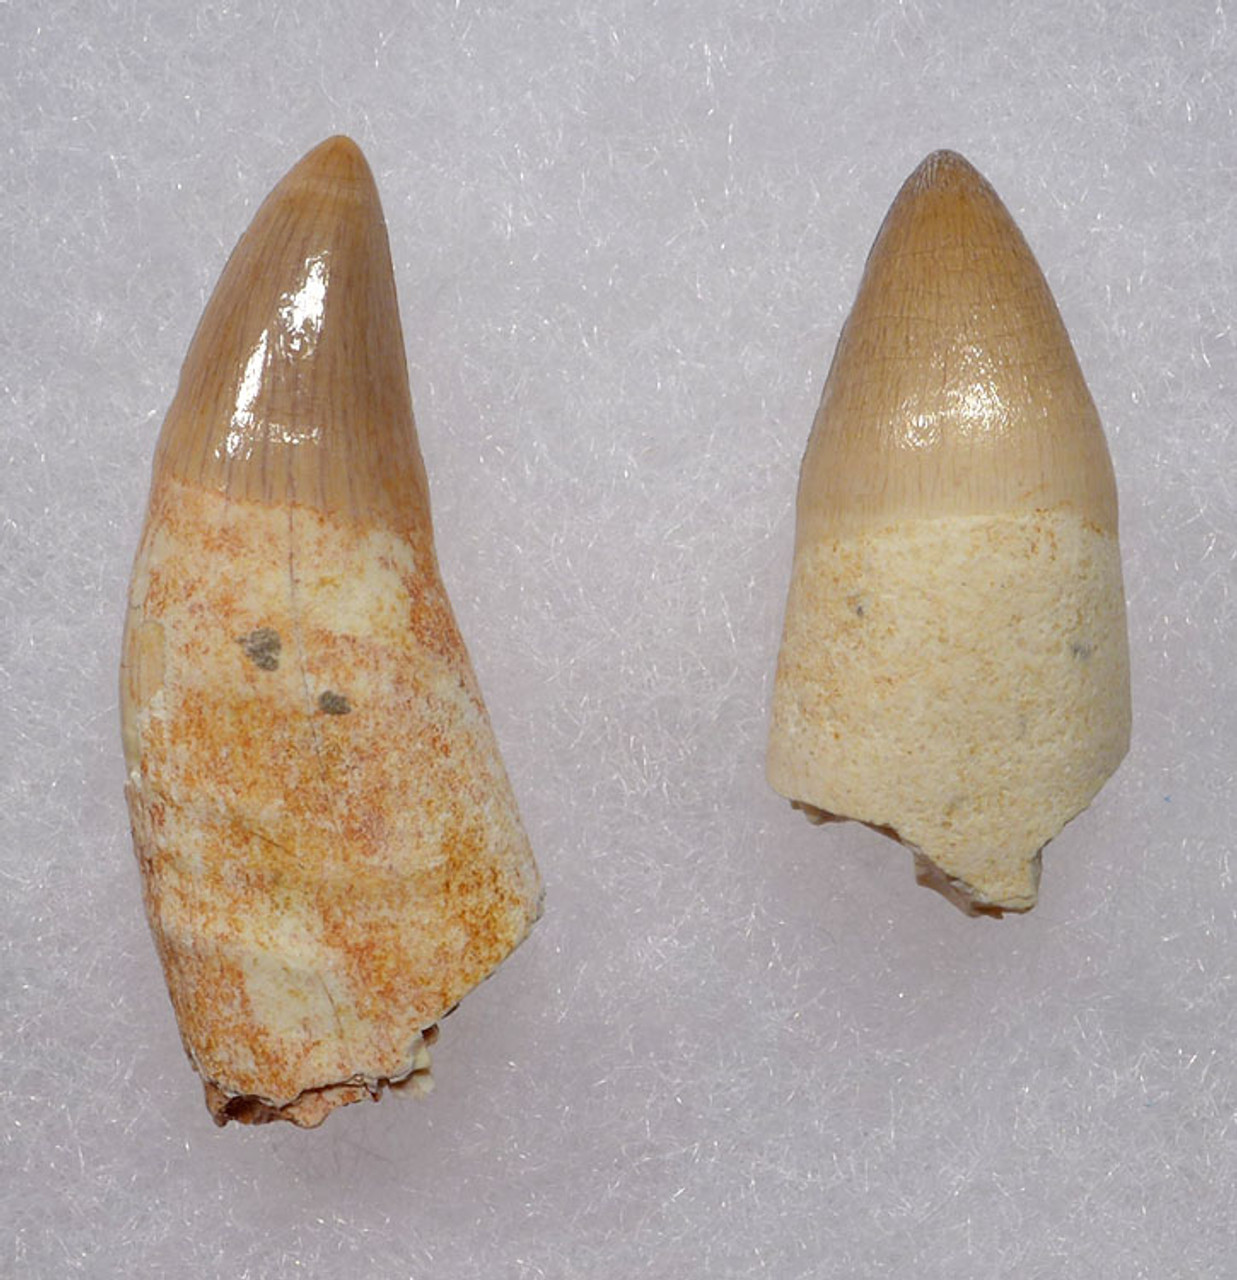 CROC022 - PAIR OF TEETH WITH PARTIAL ROOTS FROM DYROSAURUS